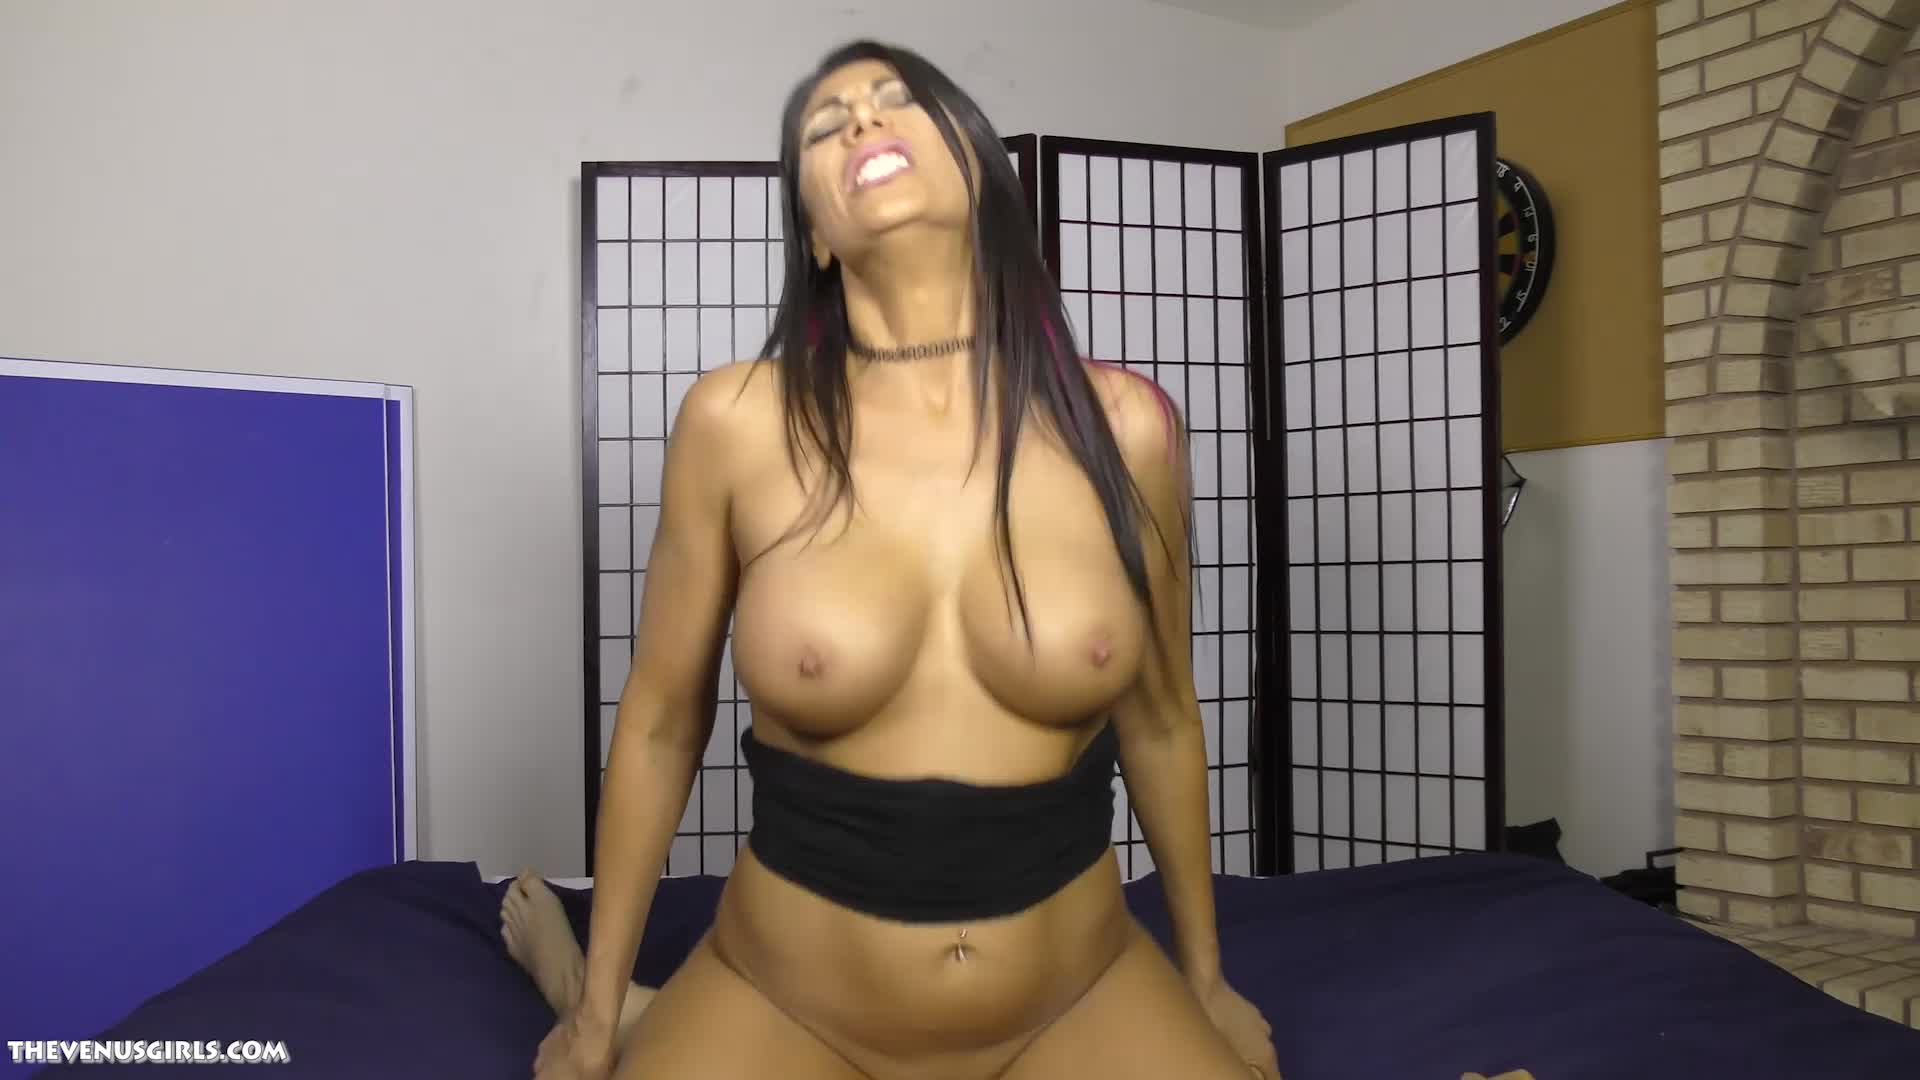 thevenusgirls'd vid